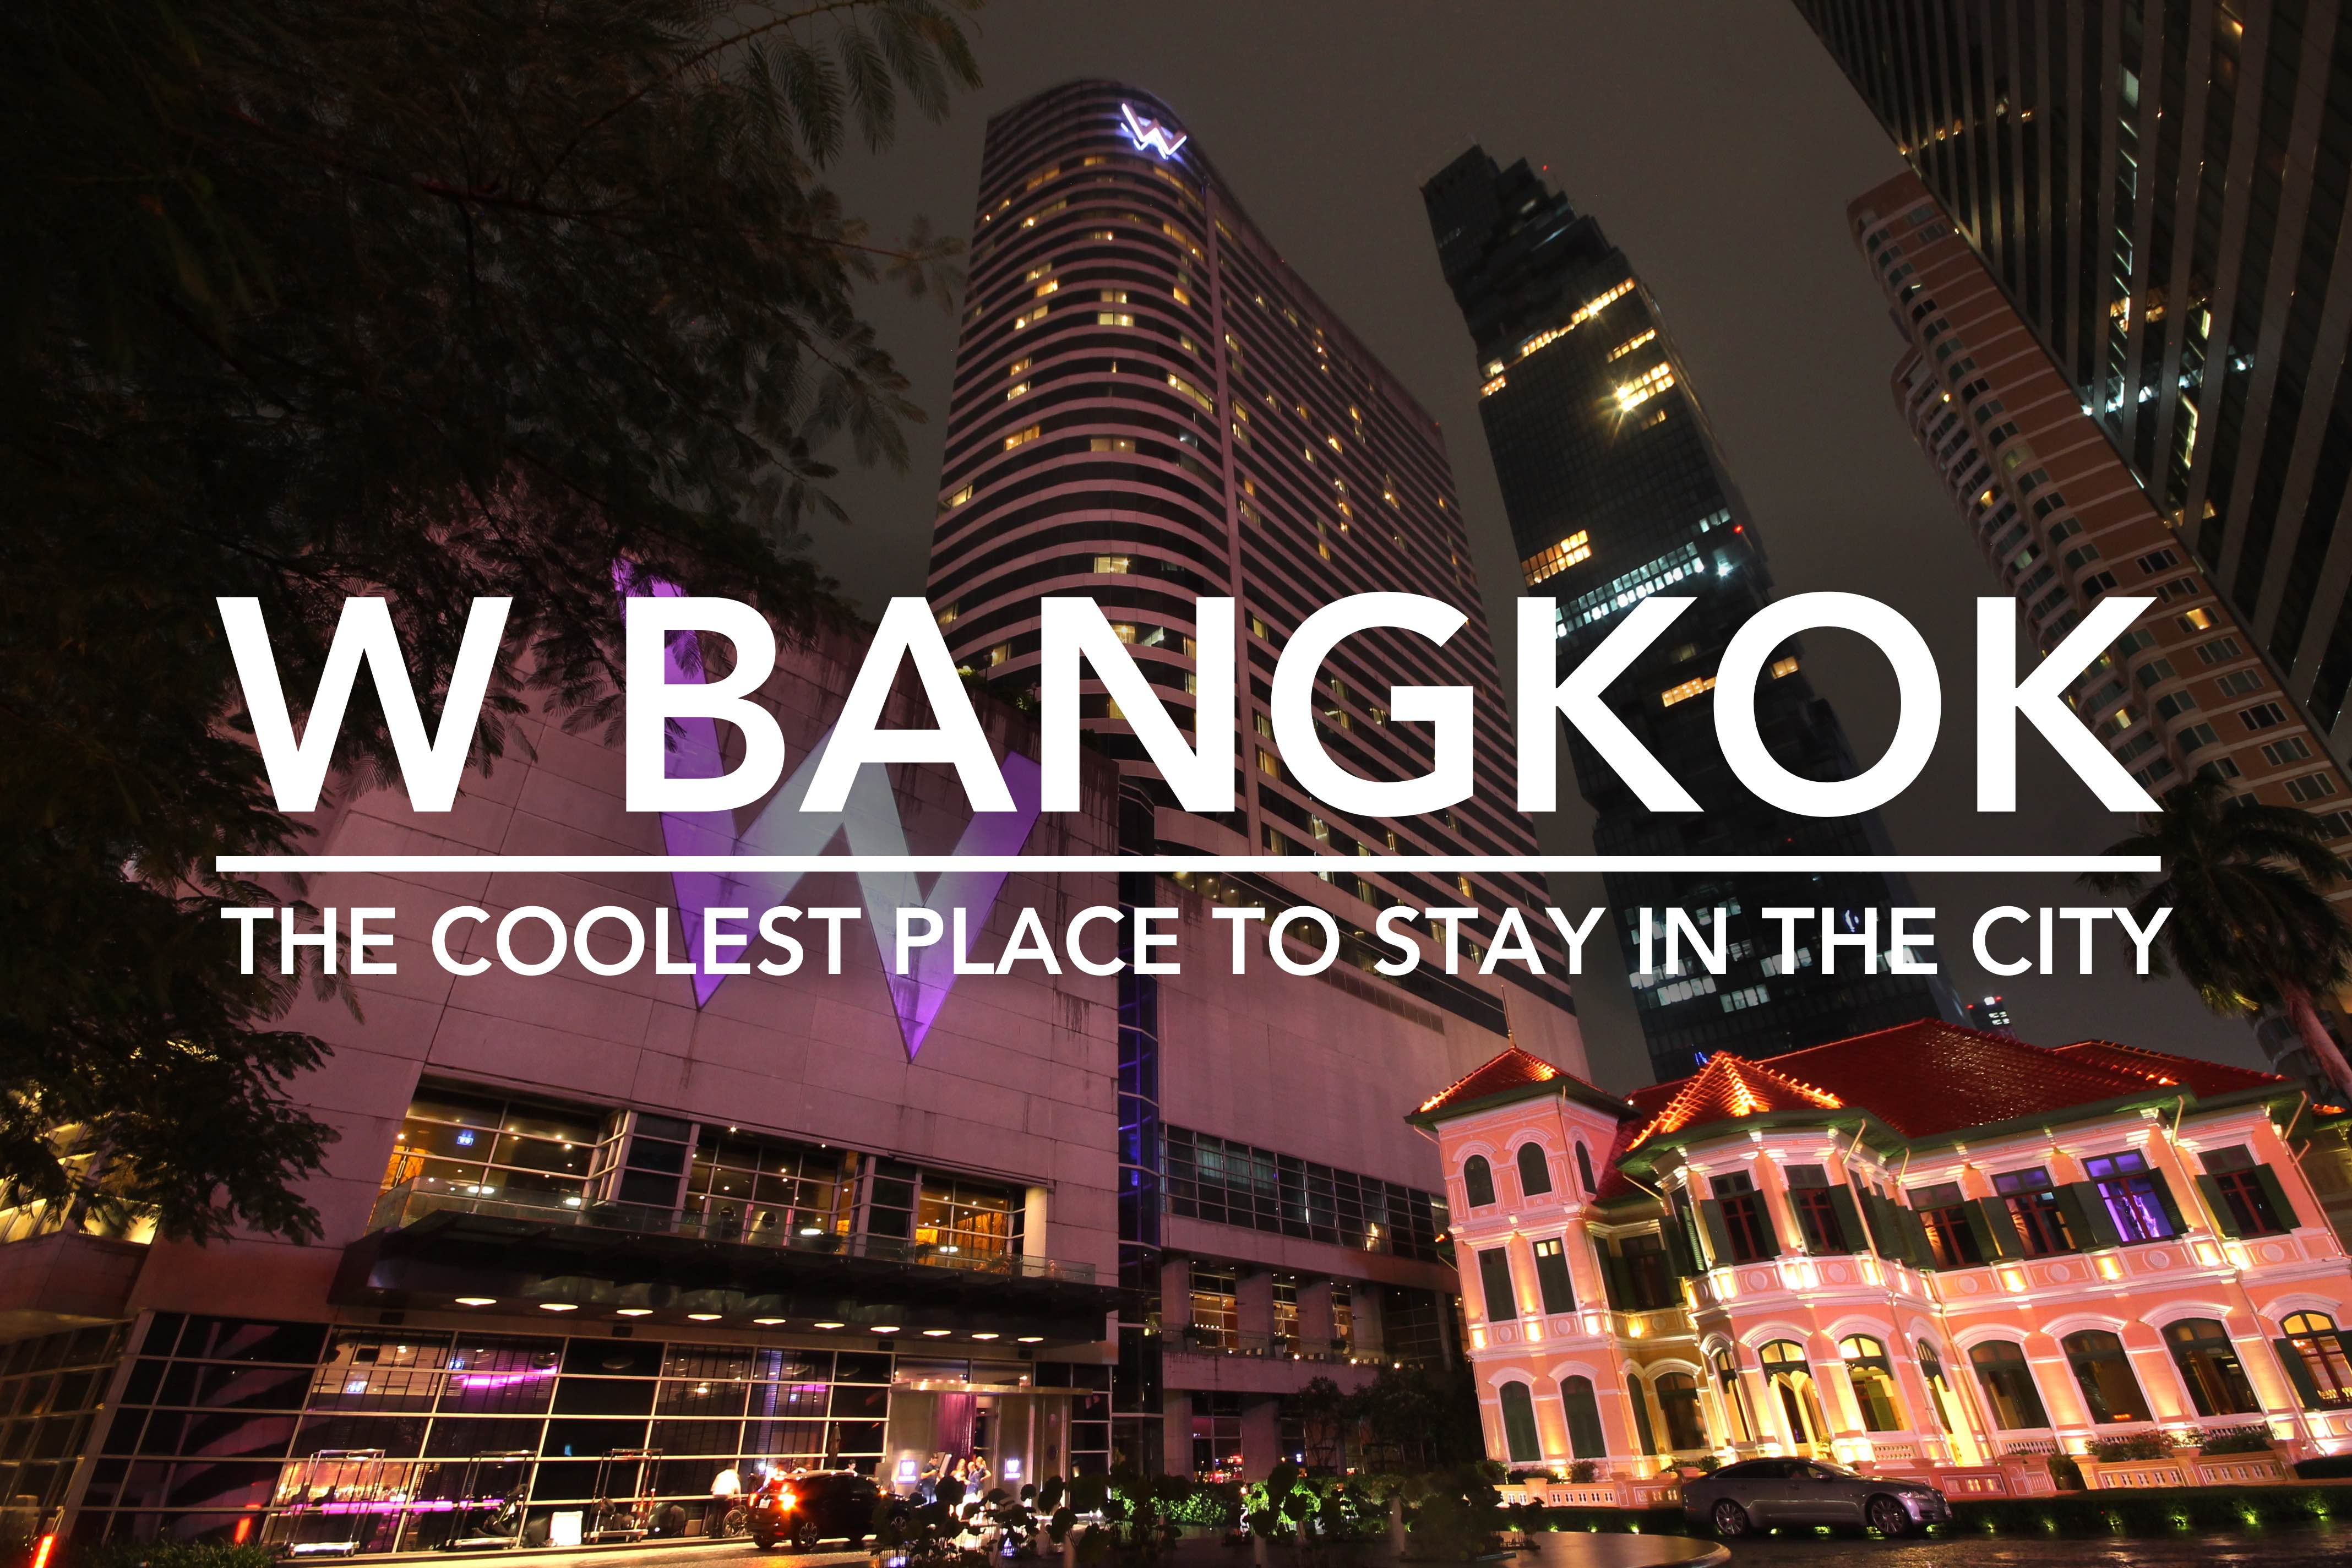 7 Reasons Why W Bangkok Is The Coolest Place To Stay